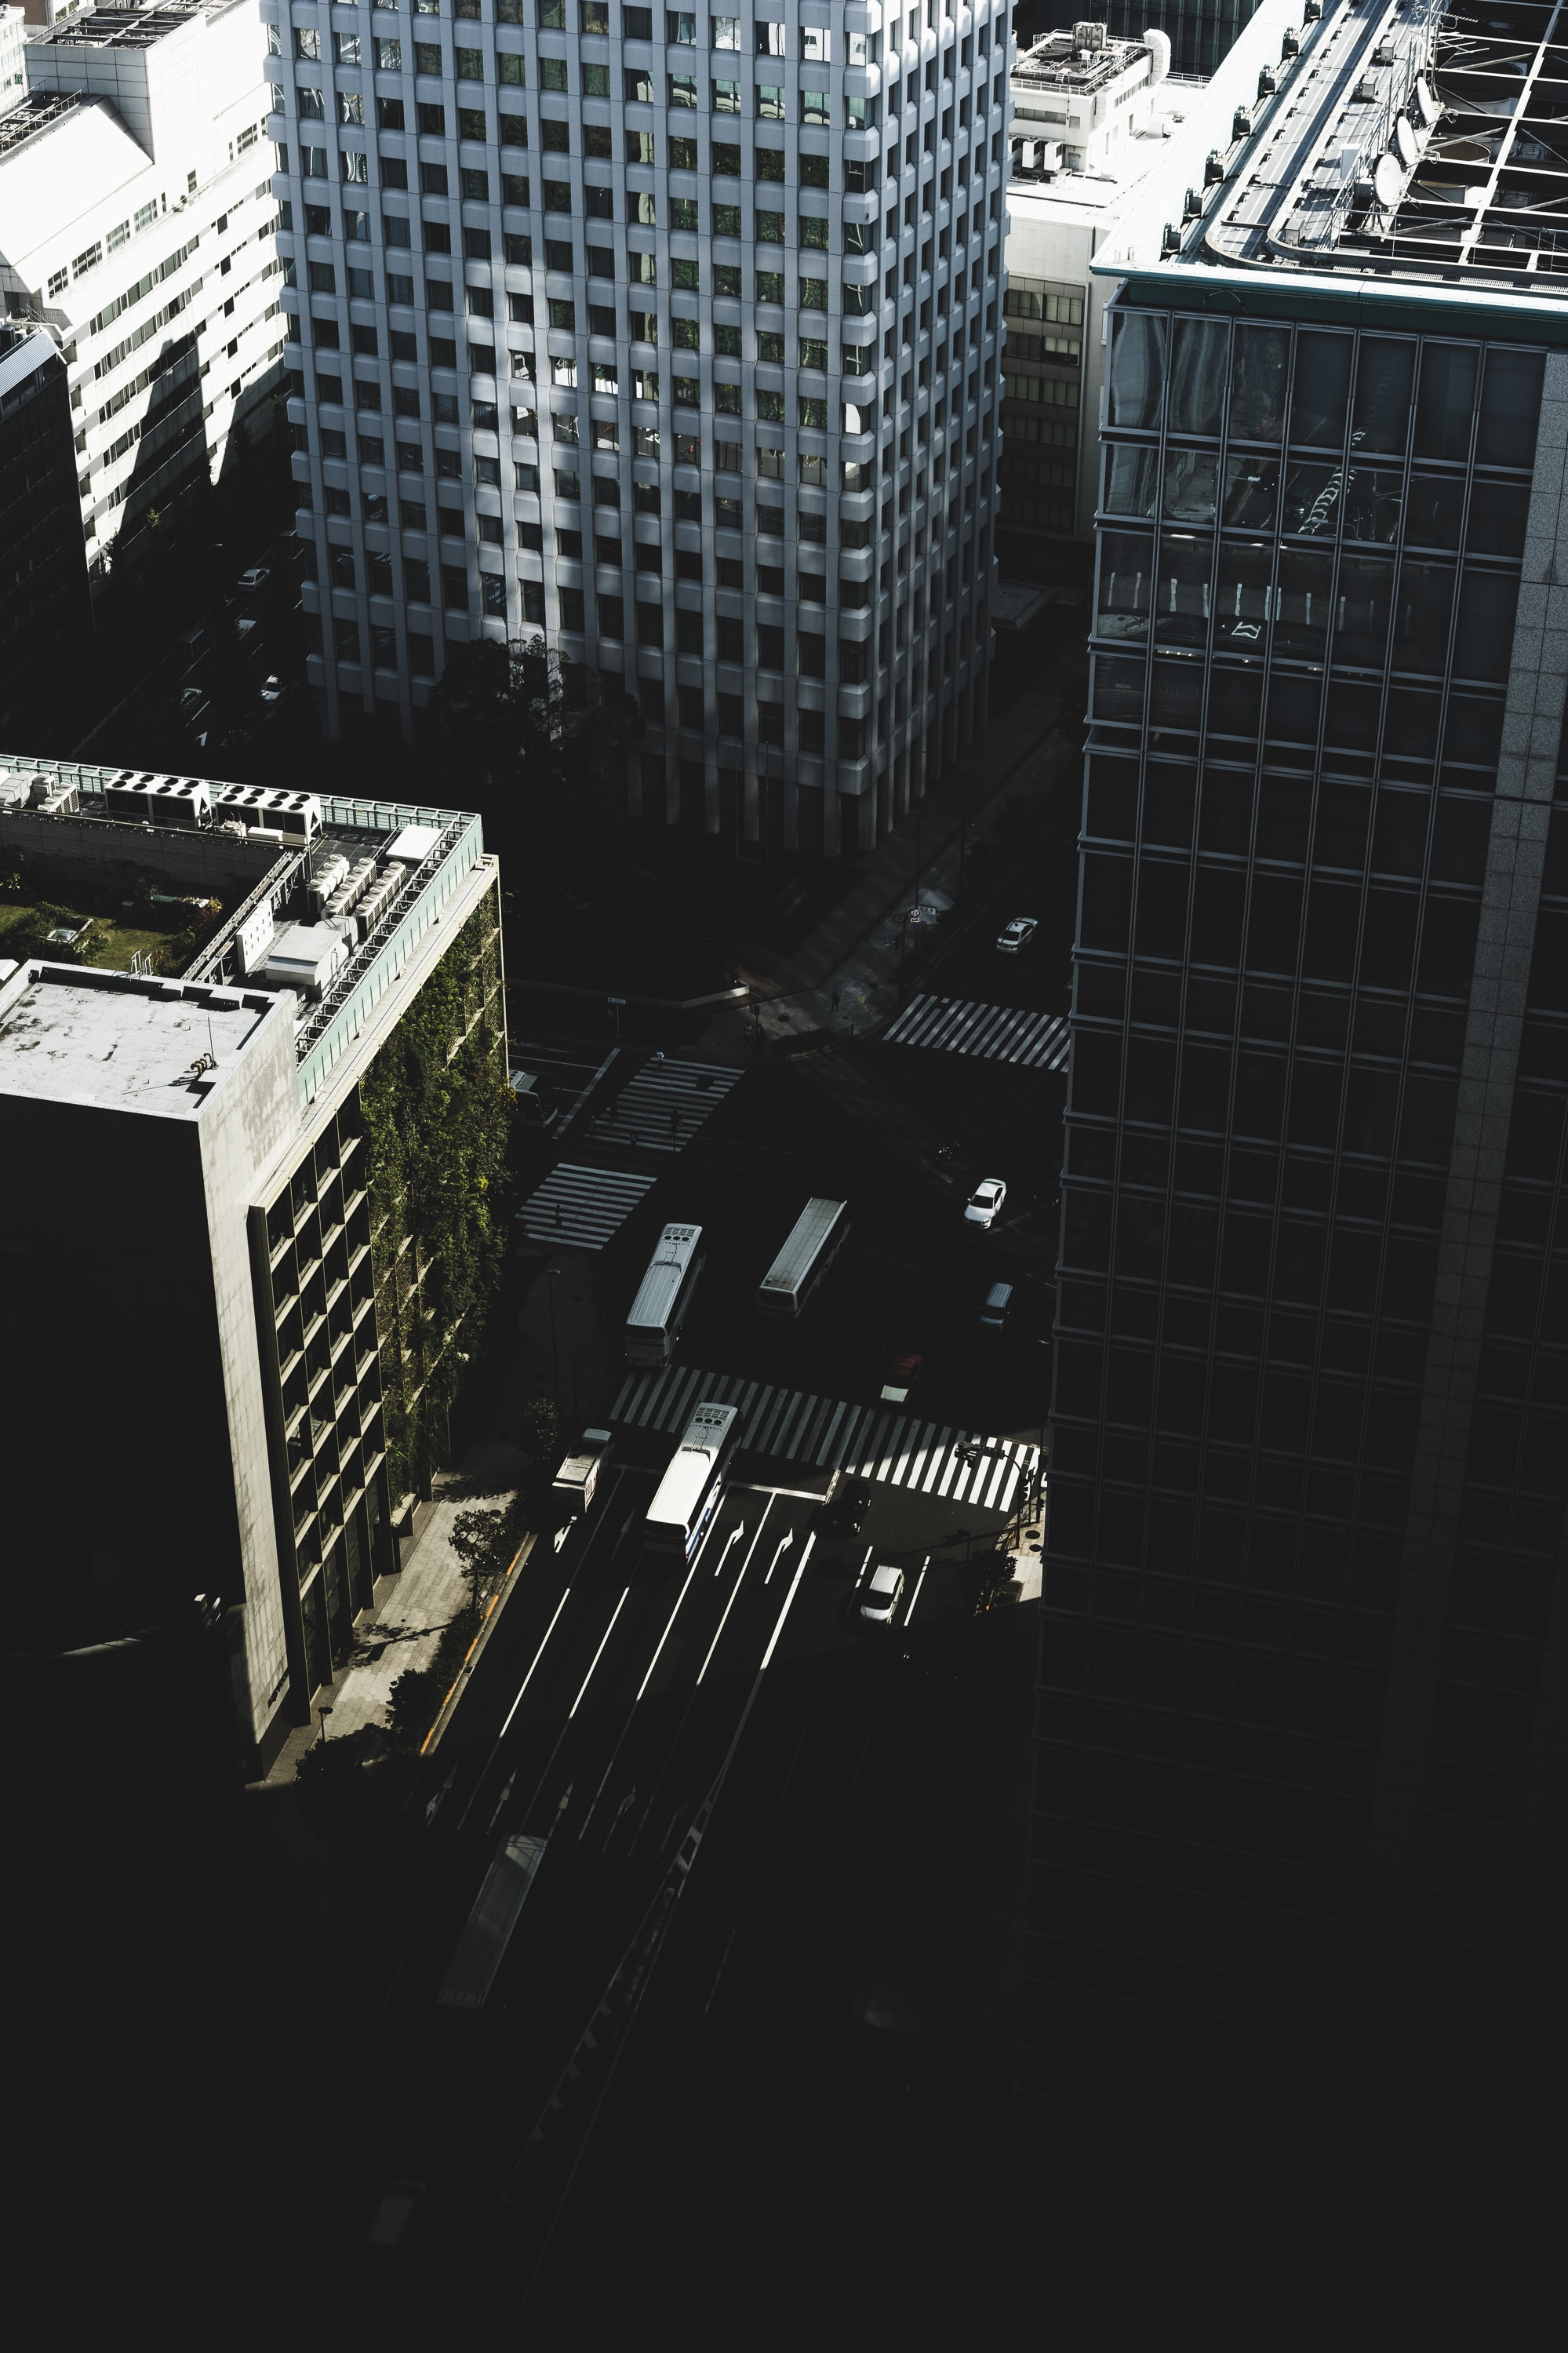 bird's eye view photography of streets and vehicles surrounded by buildings